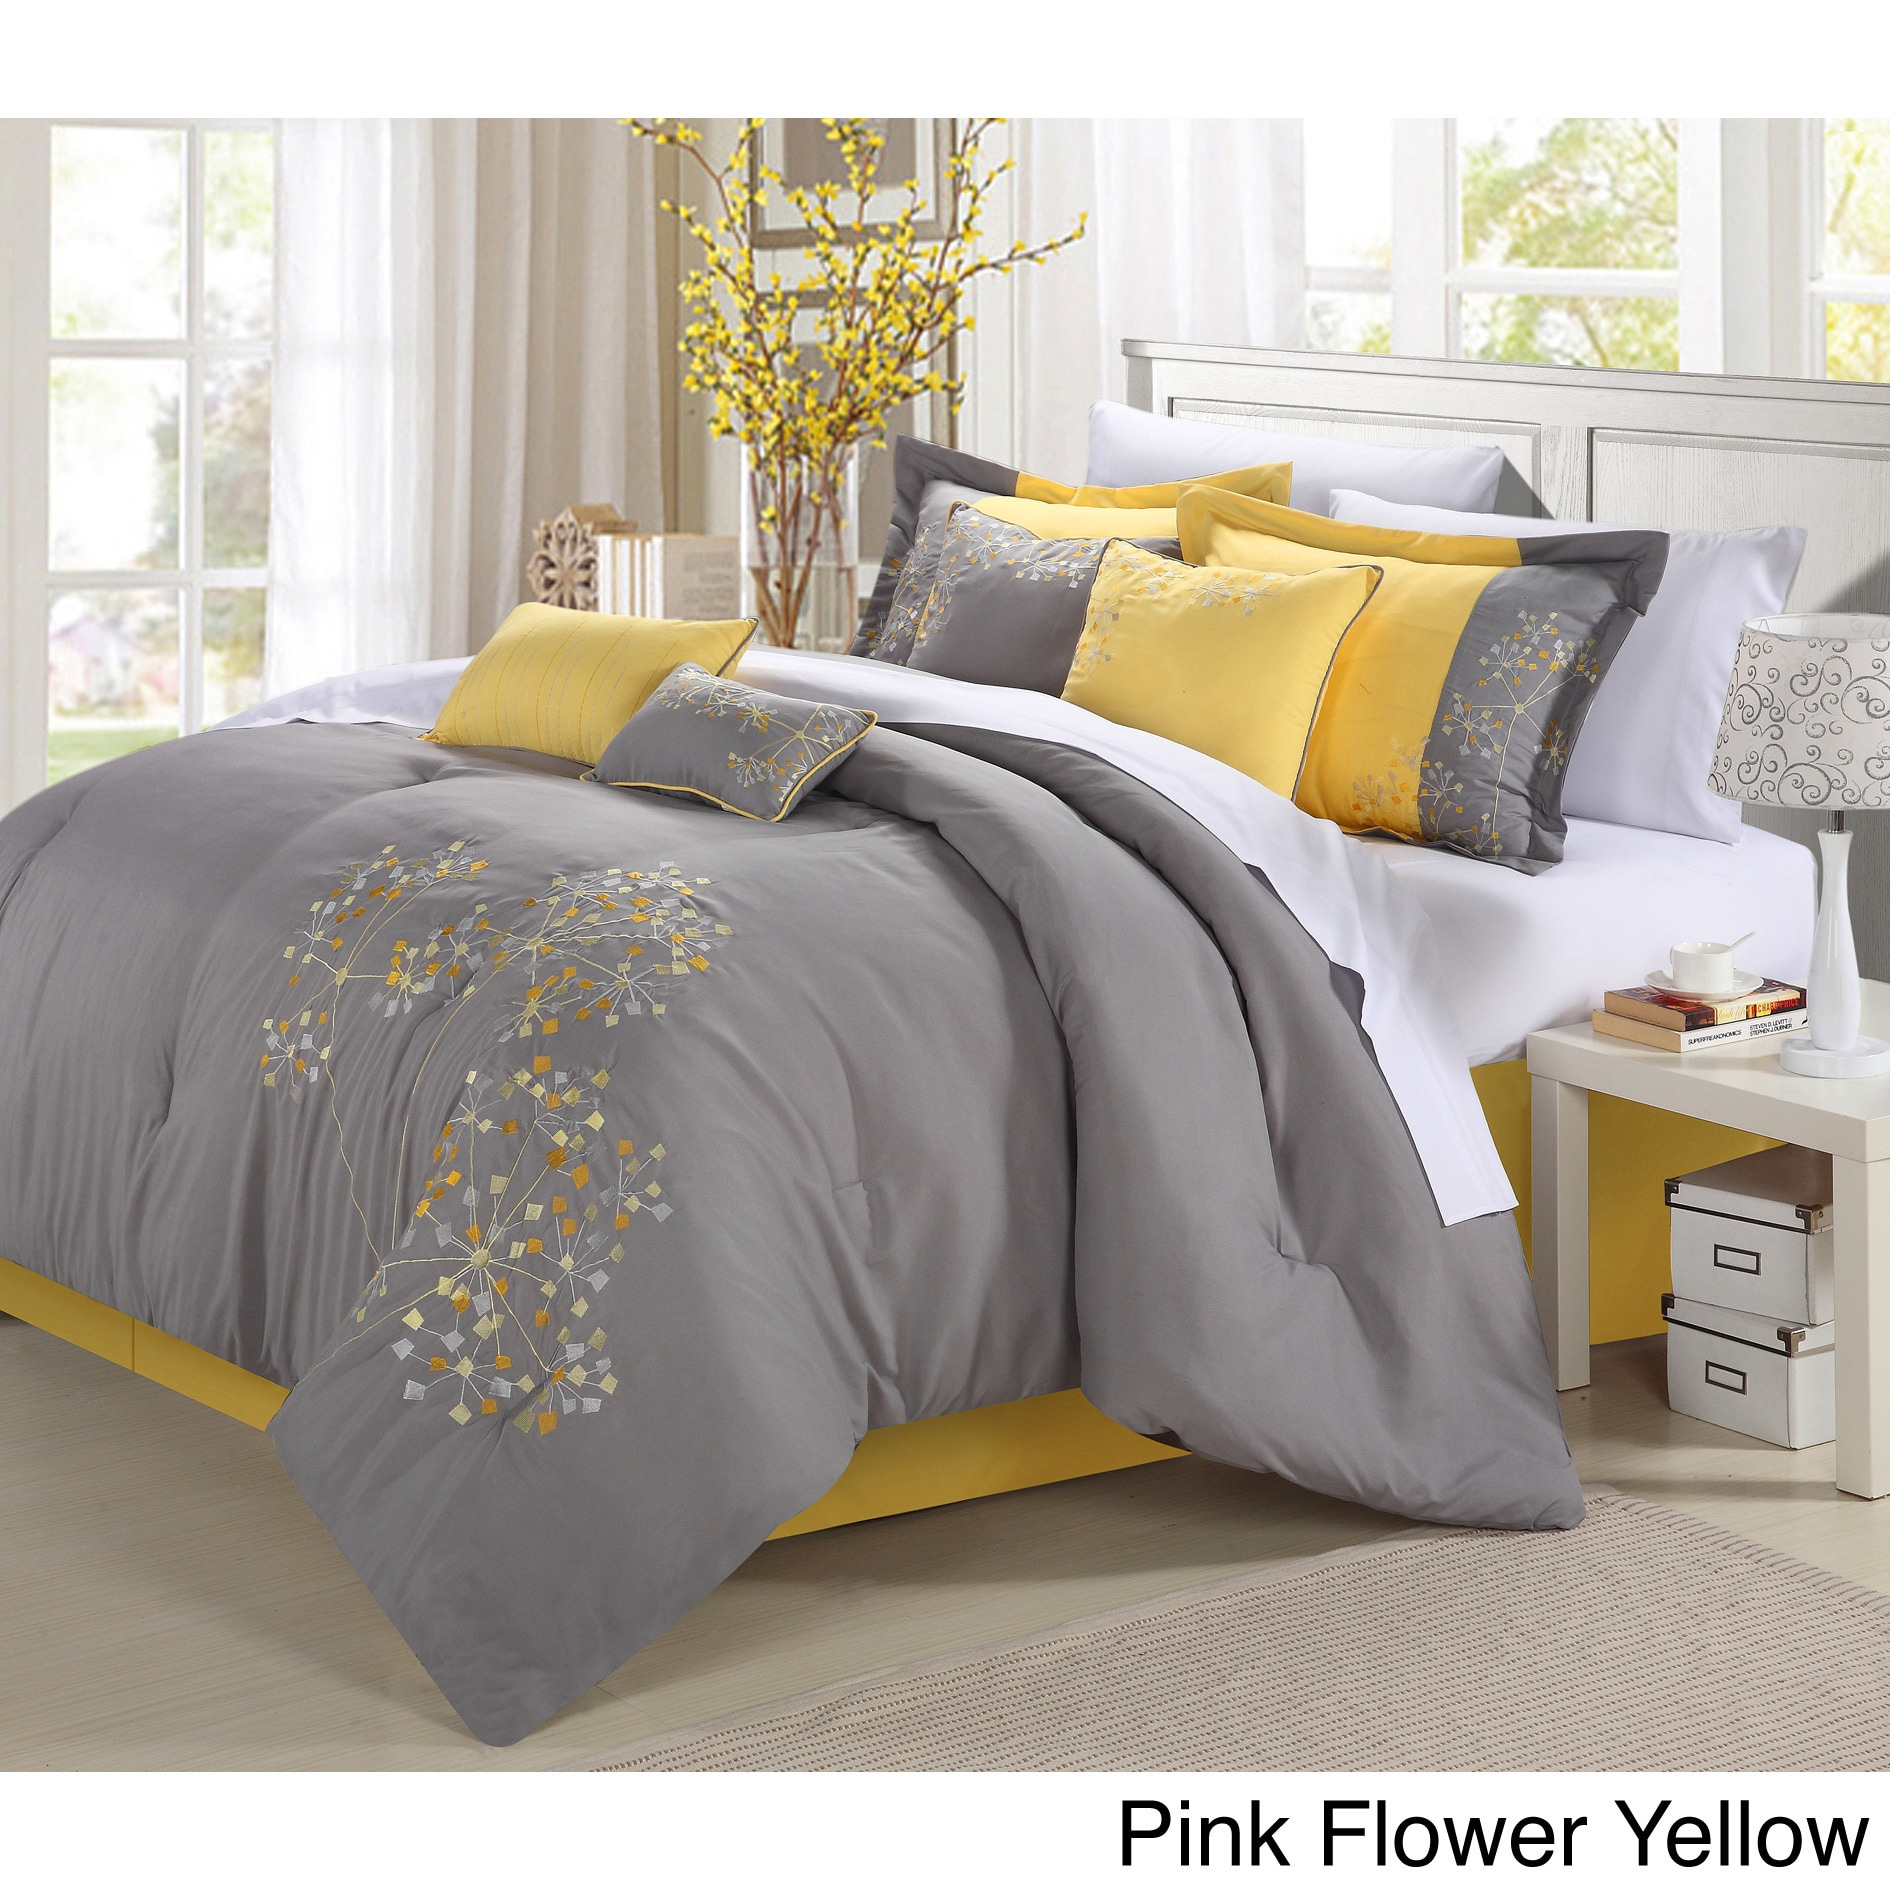 Floral 8 piece comforter set free shipping today overstock floral 8 piece comforter set free shipping today overstock 14313854 mightylinksfo Image collections